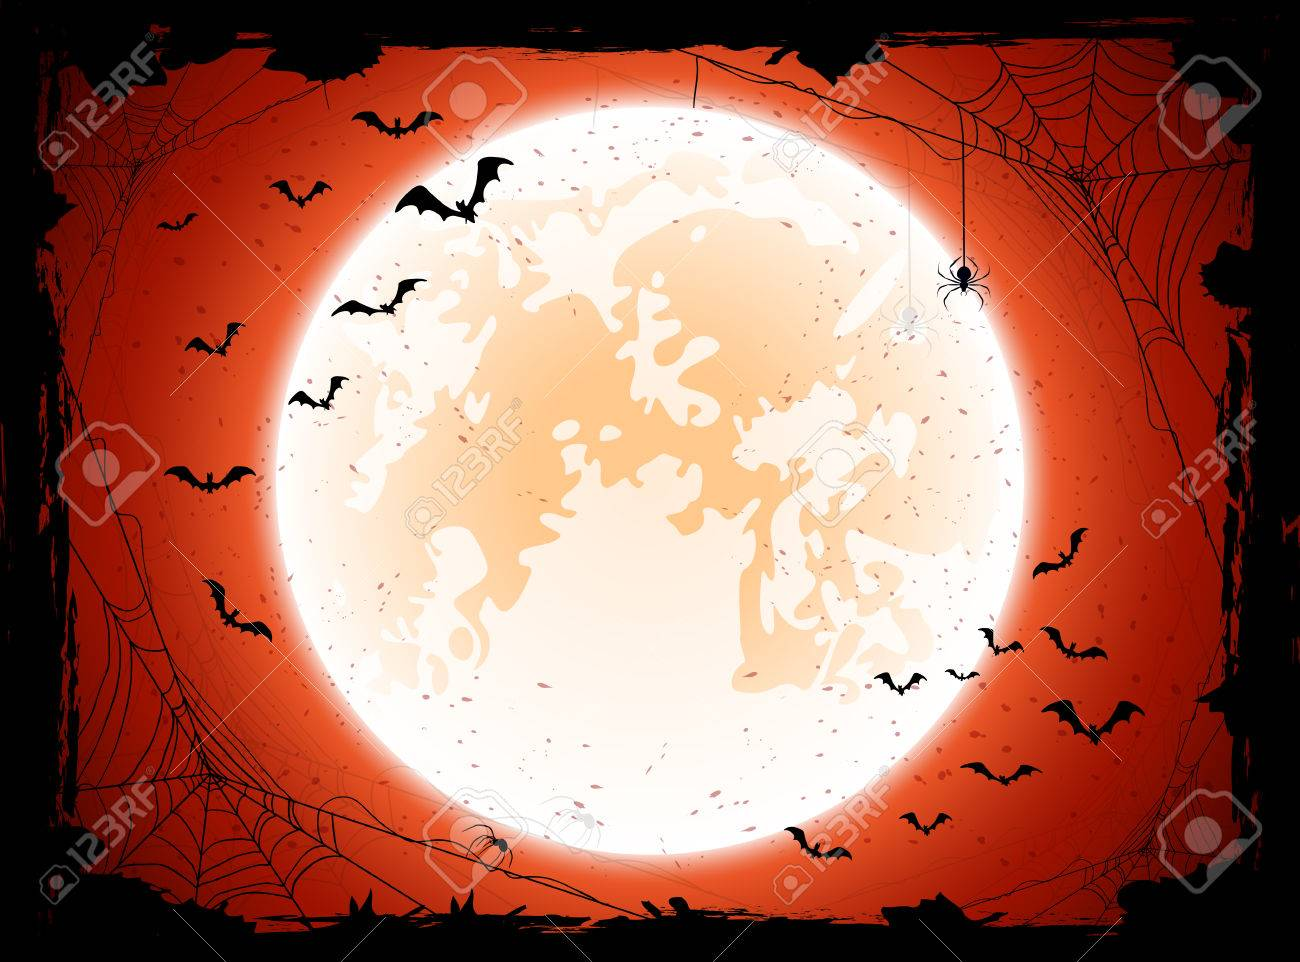 Grunge Halloween background with shining Moon, bats and spiders, illustration. - 42909780